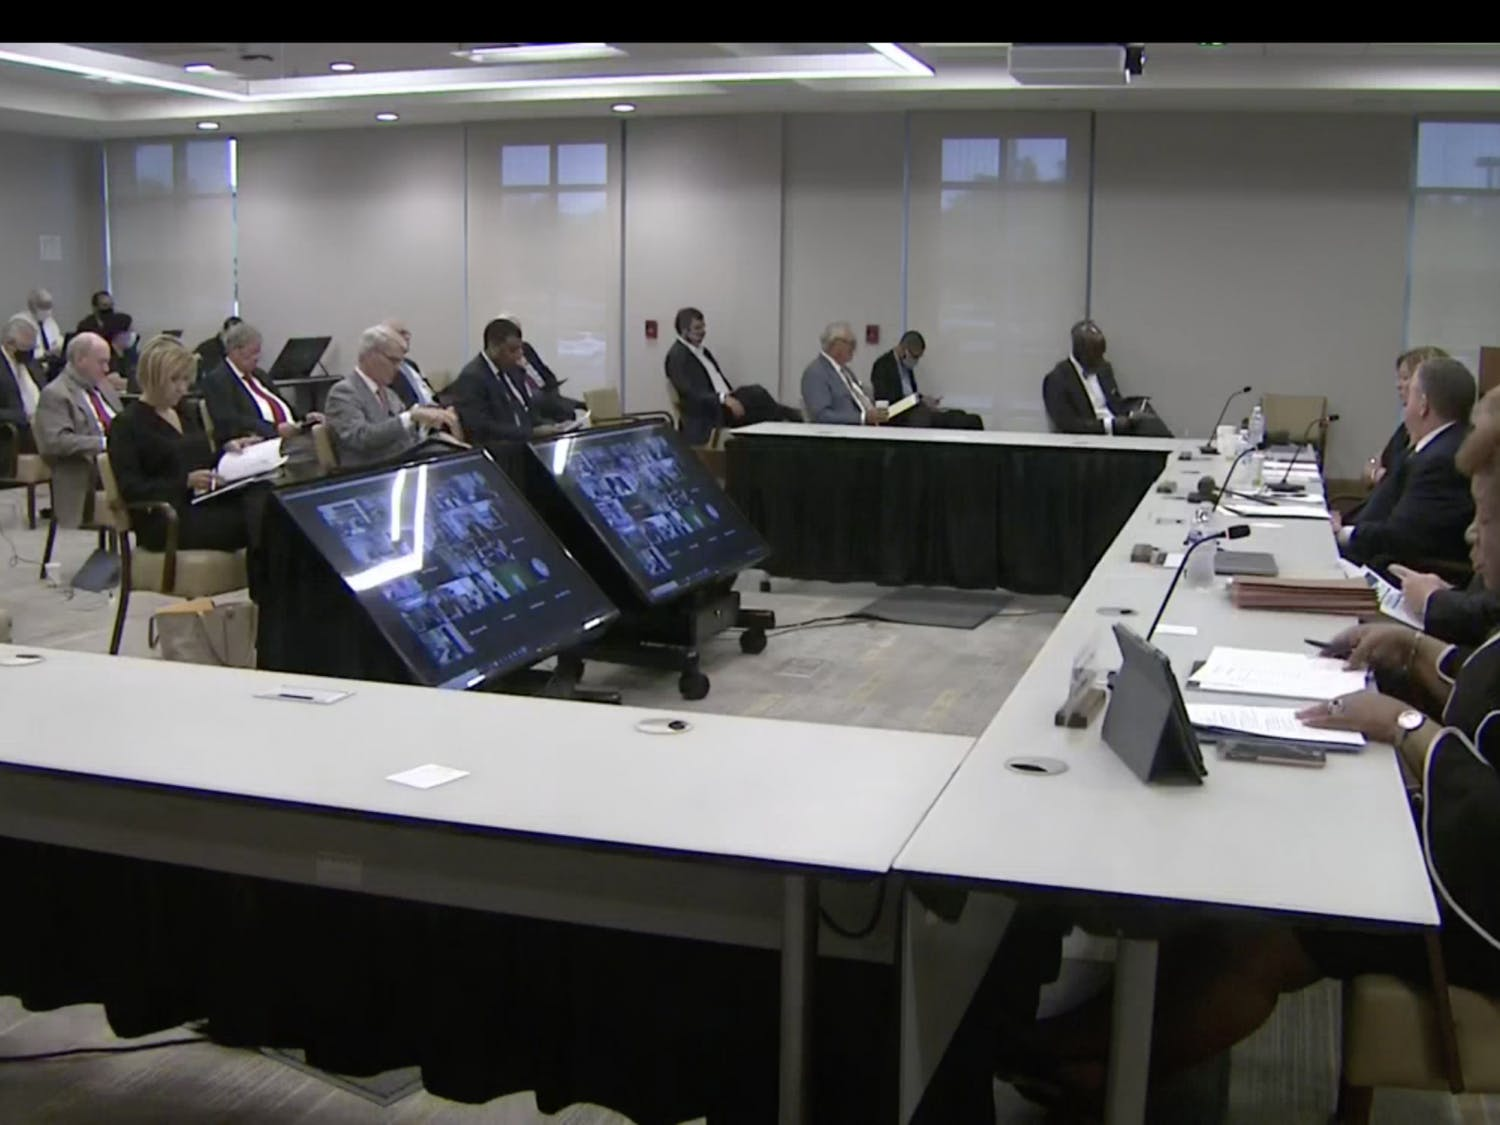 Members of the UNC Board of Governors met in person and via Zoom on Thursday, Sept. 17, 2020.